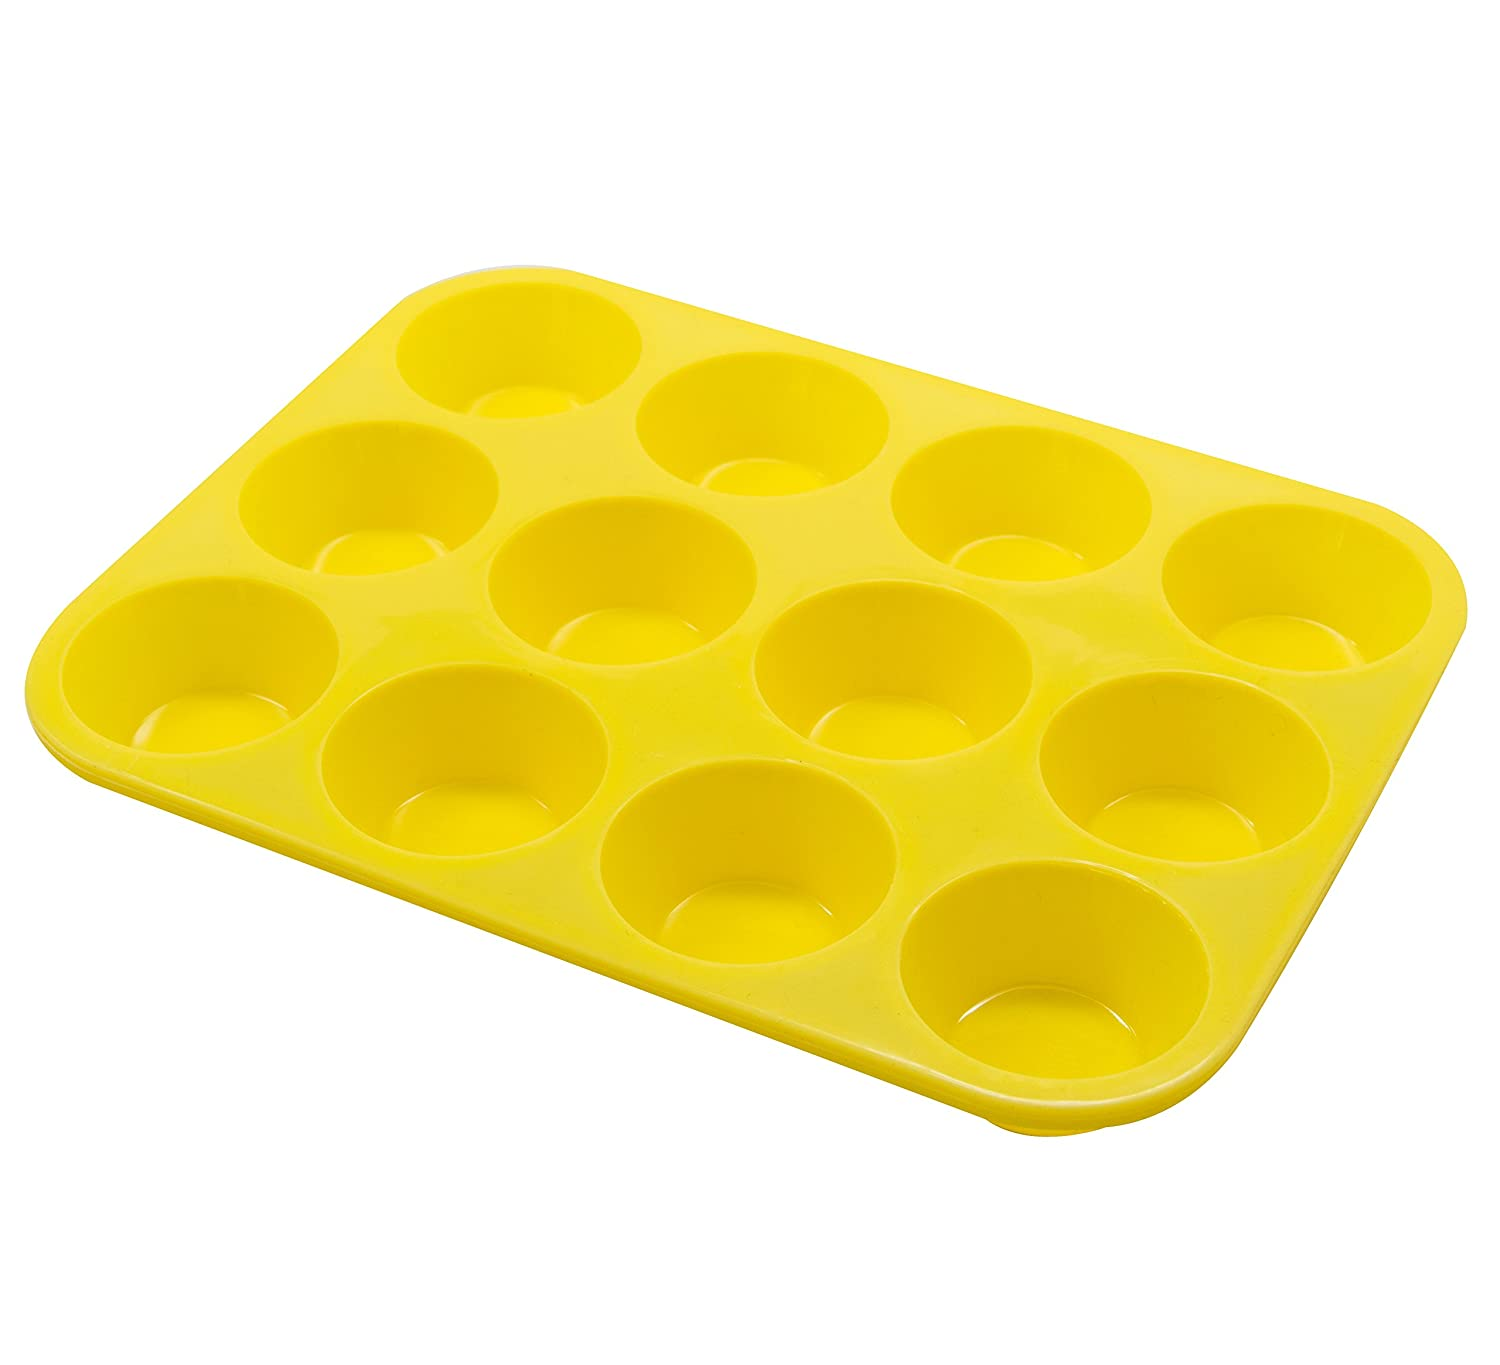 Marathon KW200011YE Premium Silicone Non-Stick Mini Muffin and Cupcake Pan. BPA Free, Oven and Dishwasher Safe, Easy to Clean, Color – Yellow.